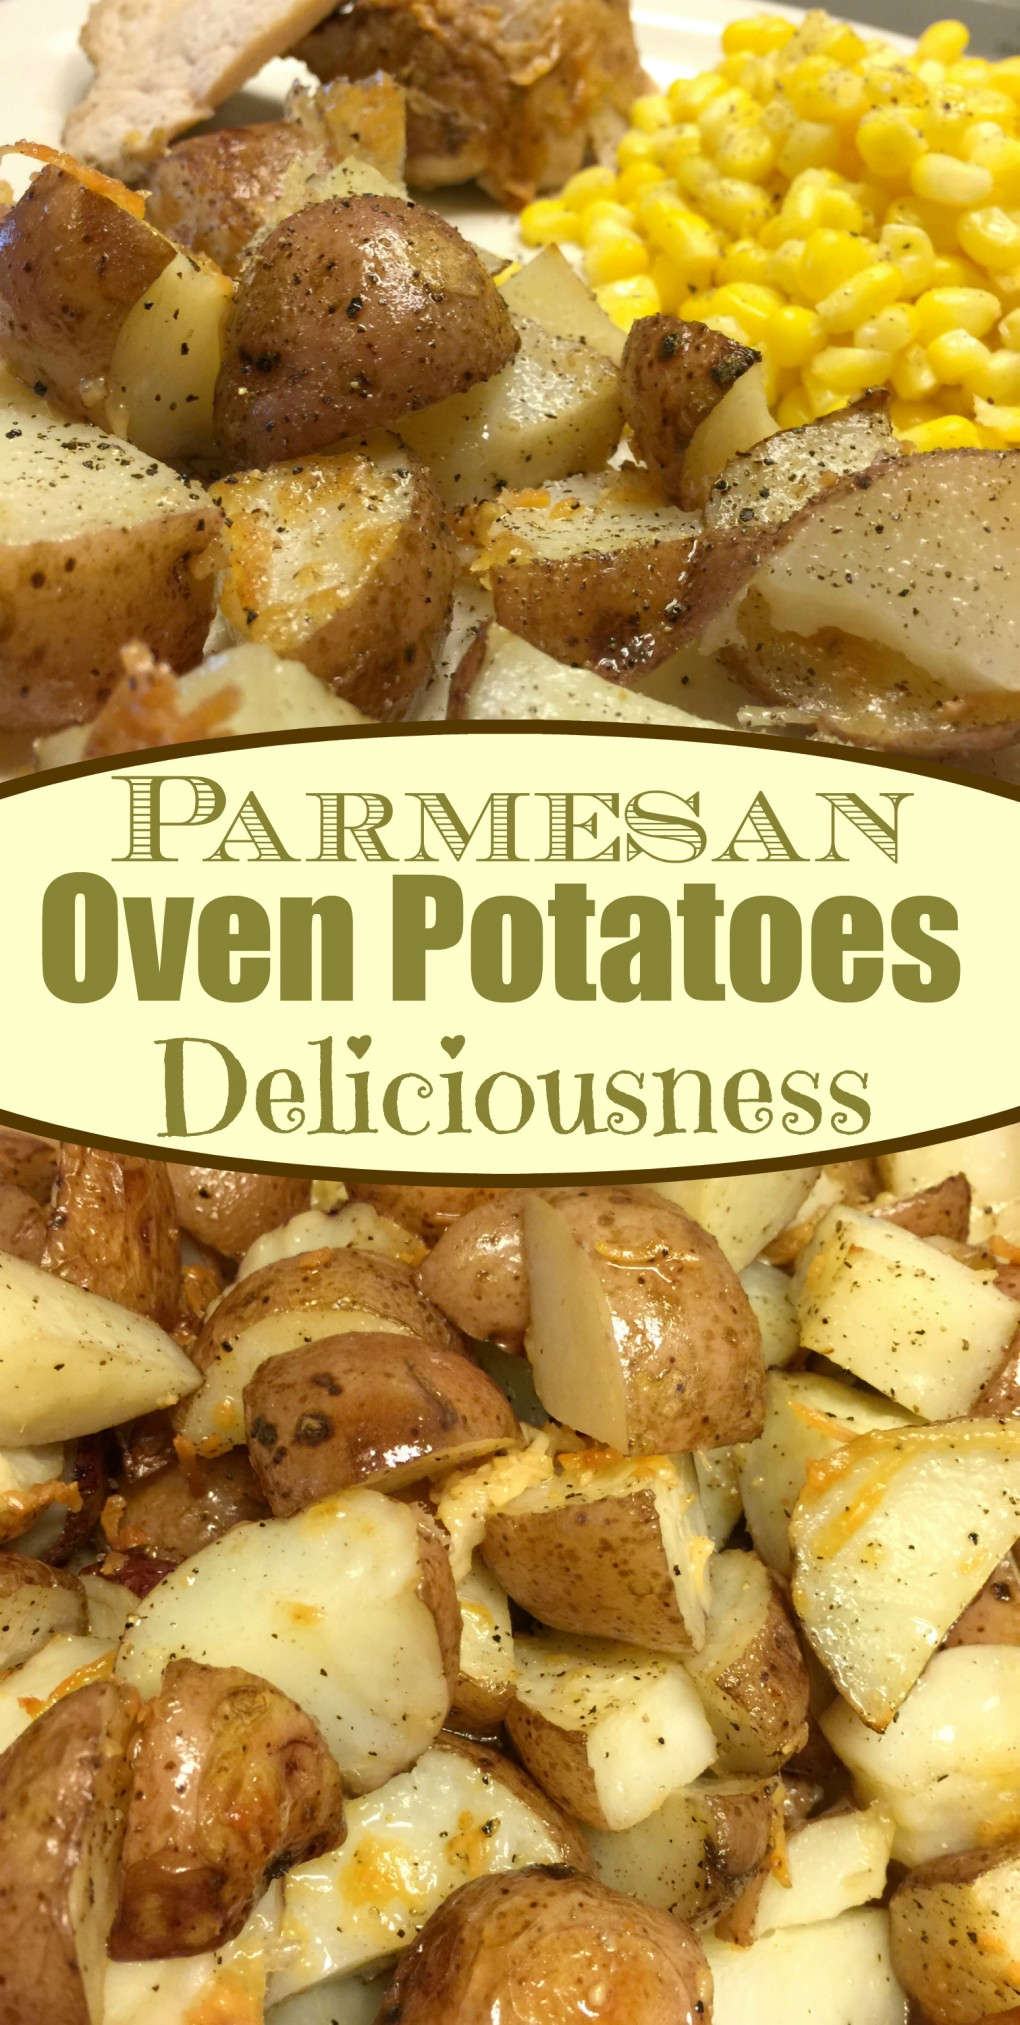 Parmesan Oven Potatoes Deliciousness